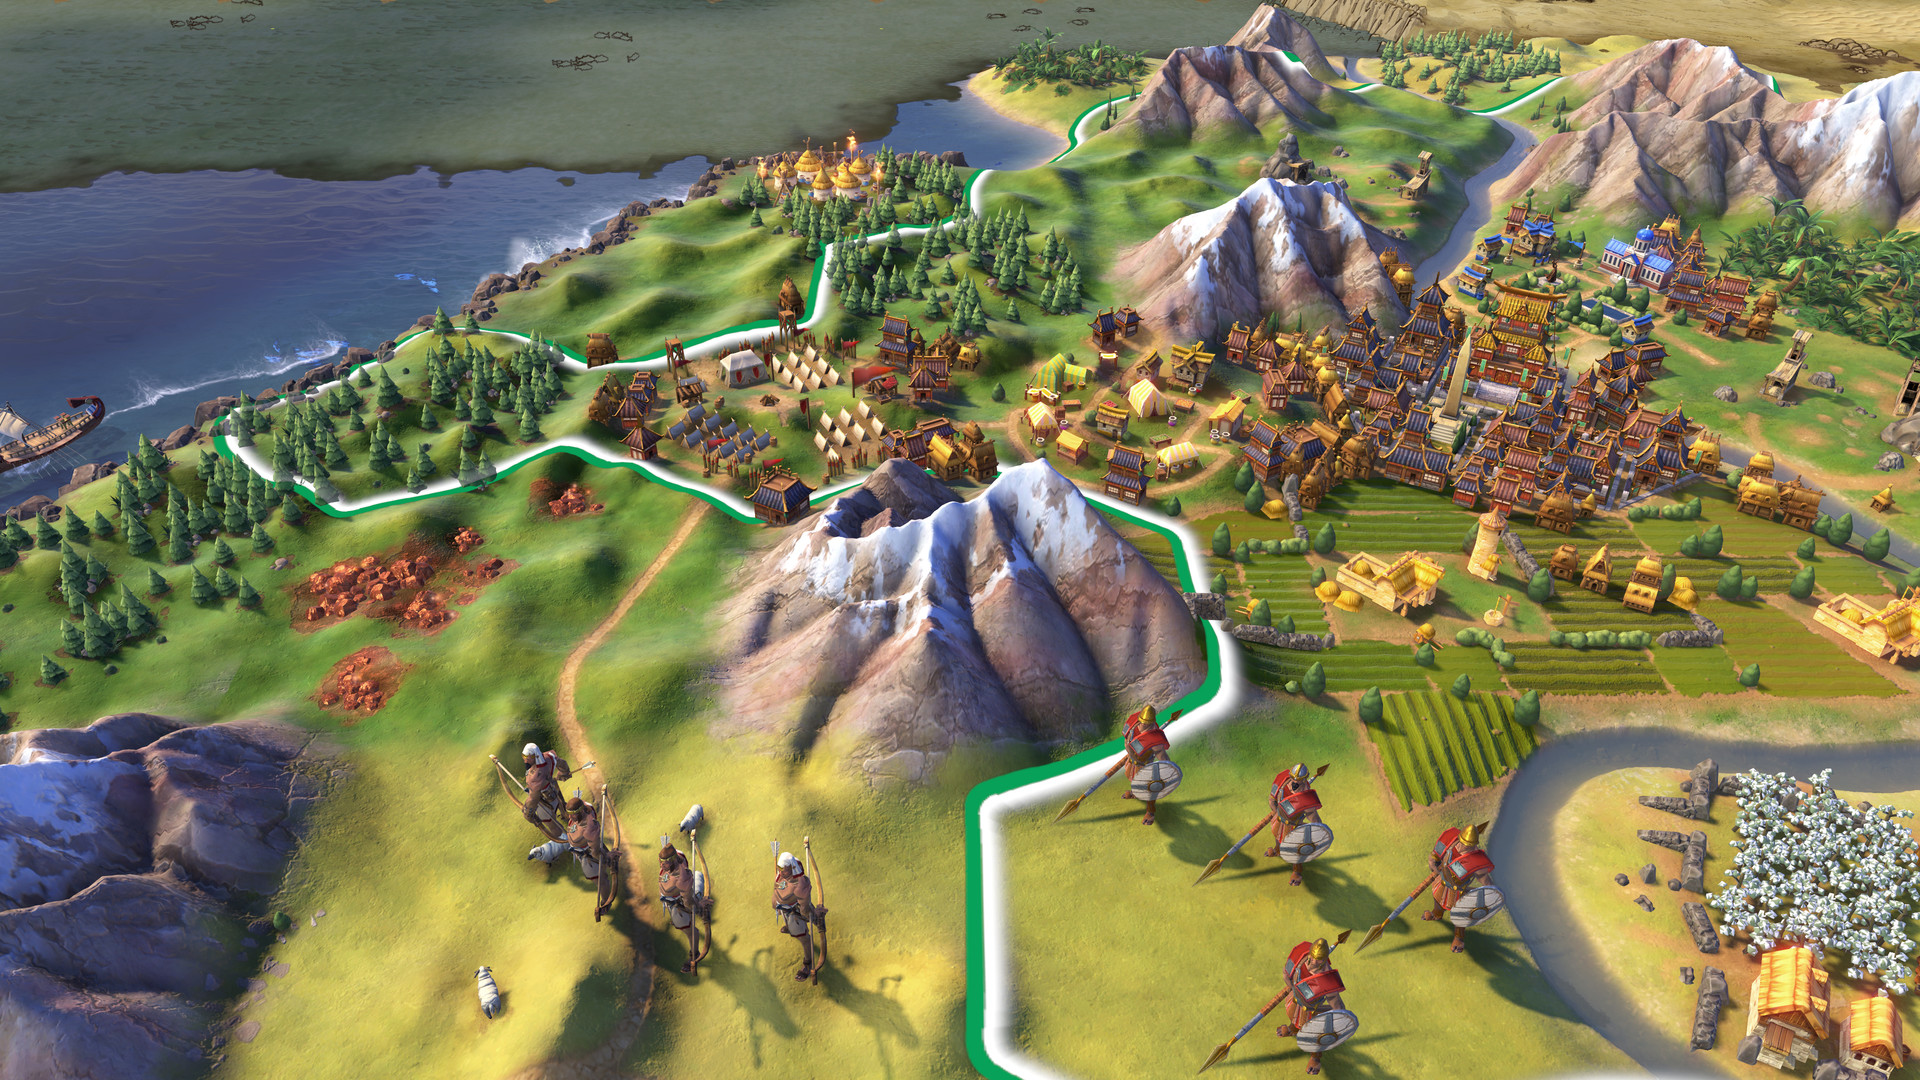 Civilization VI's 'Rise and Fall' and 'Gathering Storm' DLC packs